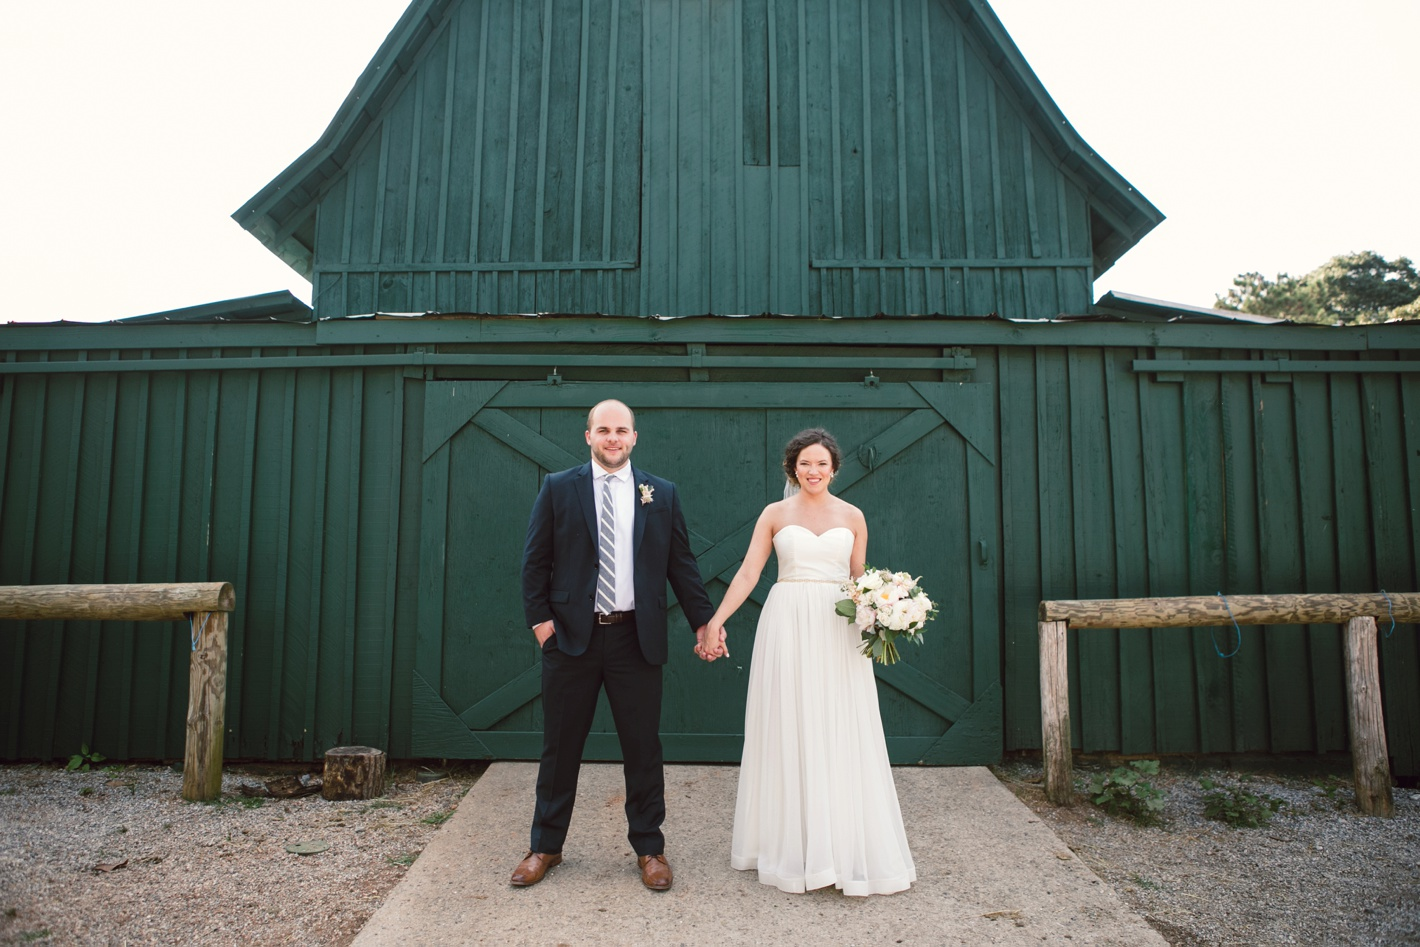 Chukkar_farms_wedding_photography_0032